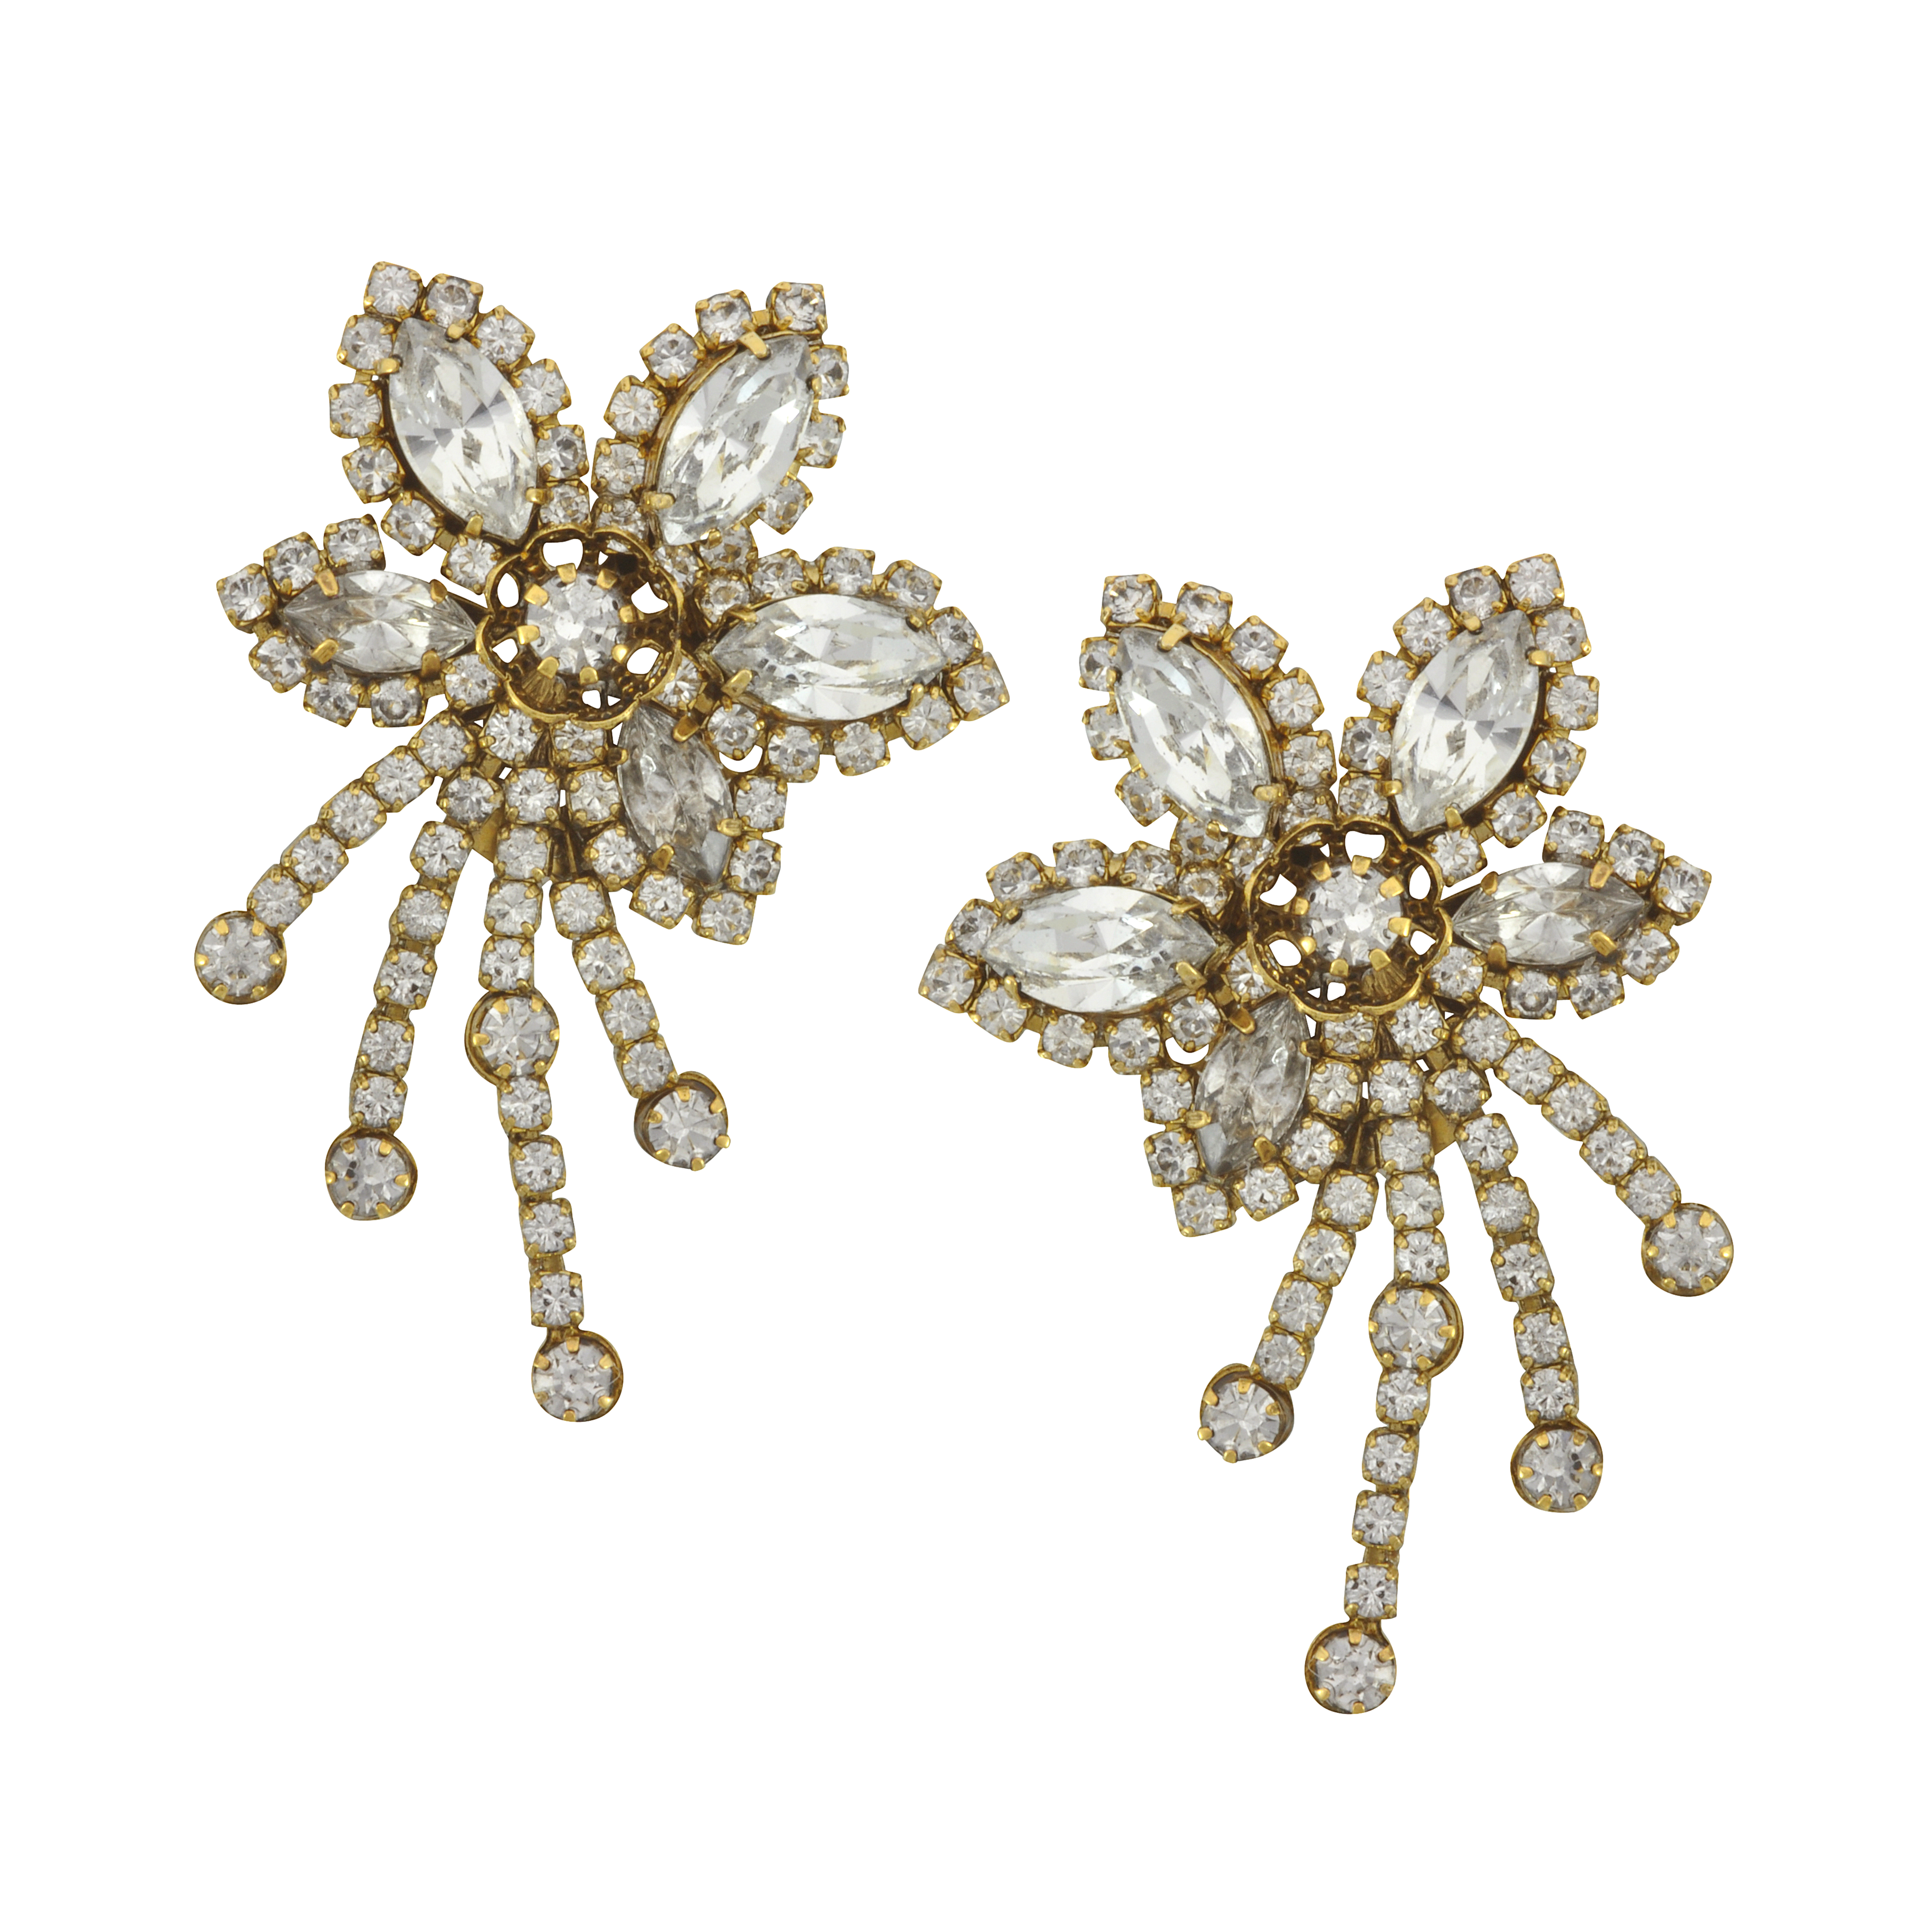 Erickson Beamon Nightshade Ear Cuffs - Sophie's Closet